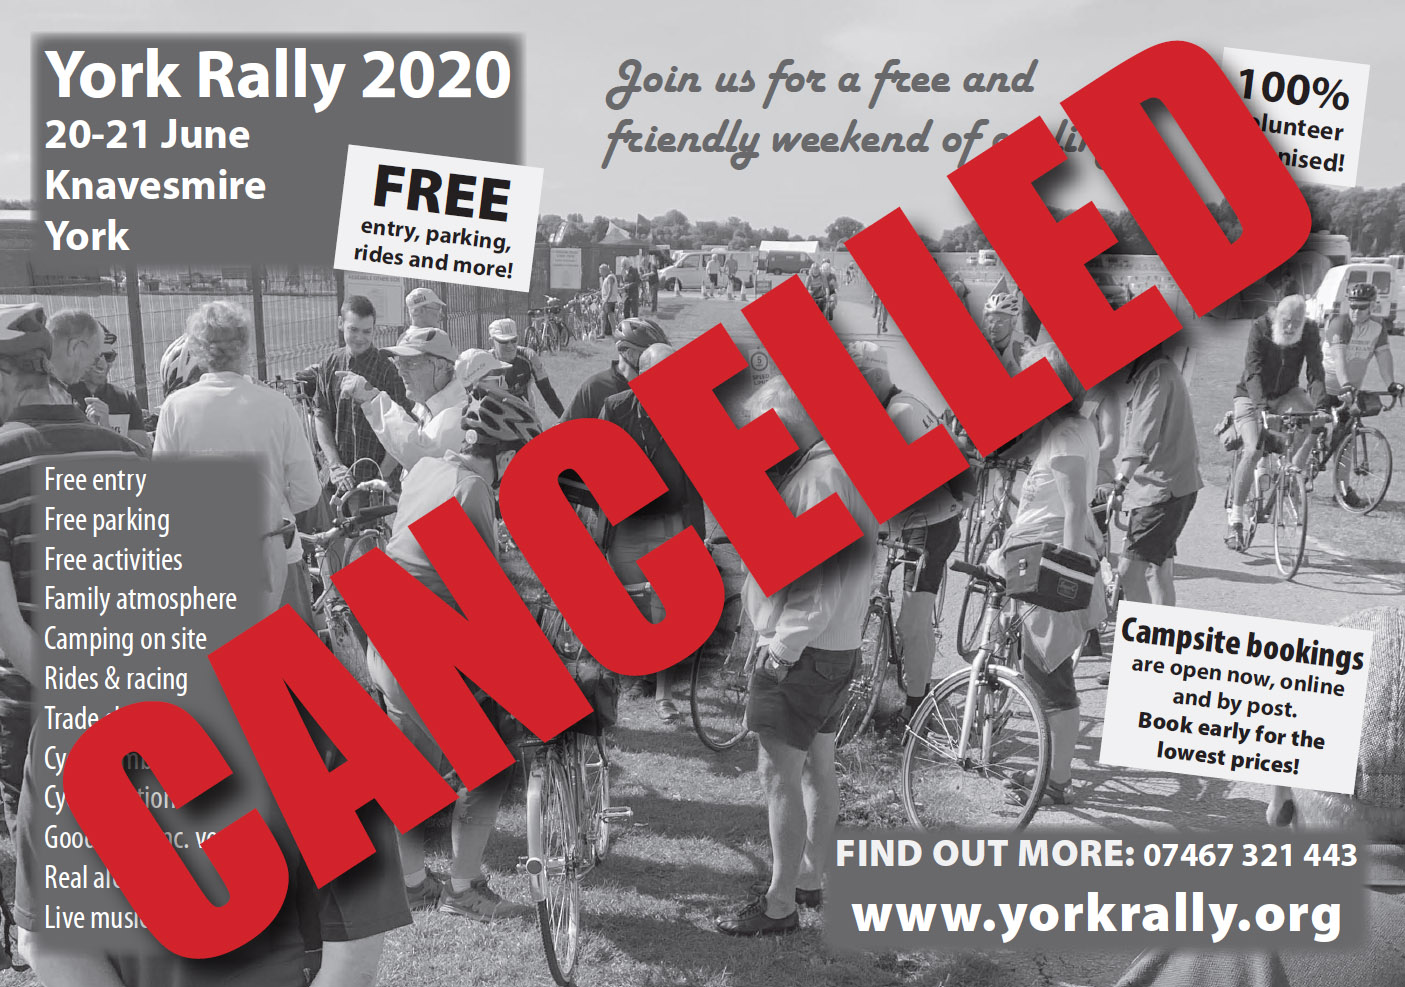 2020 York Rally cancelled